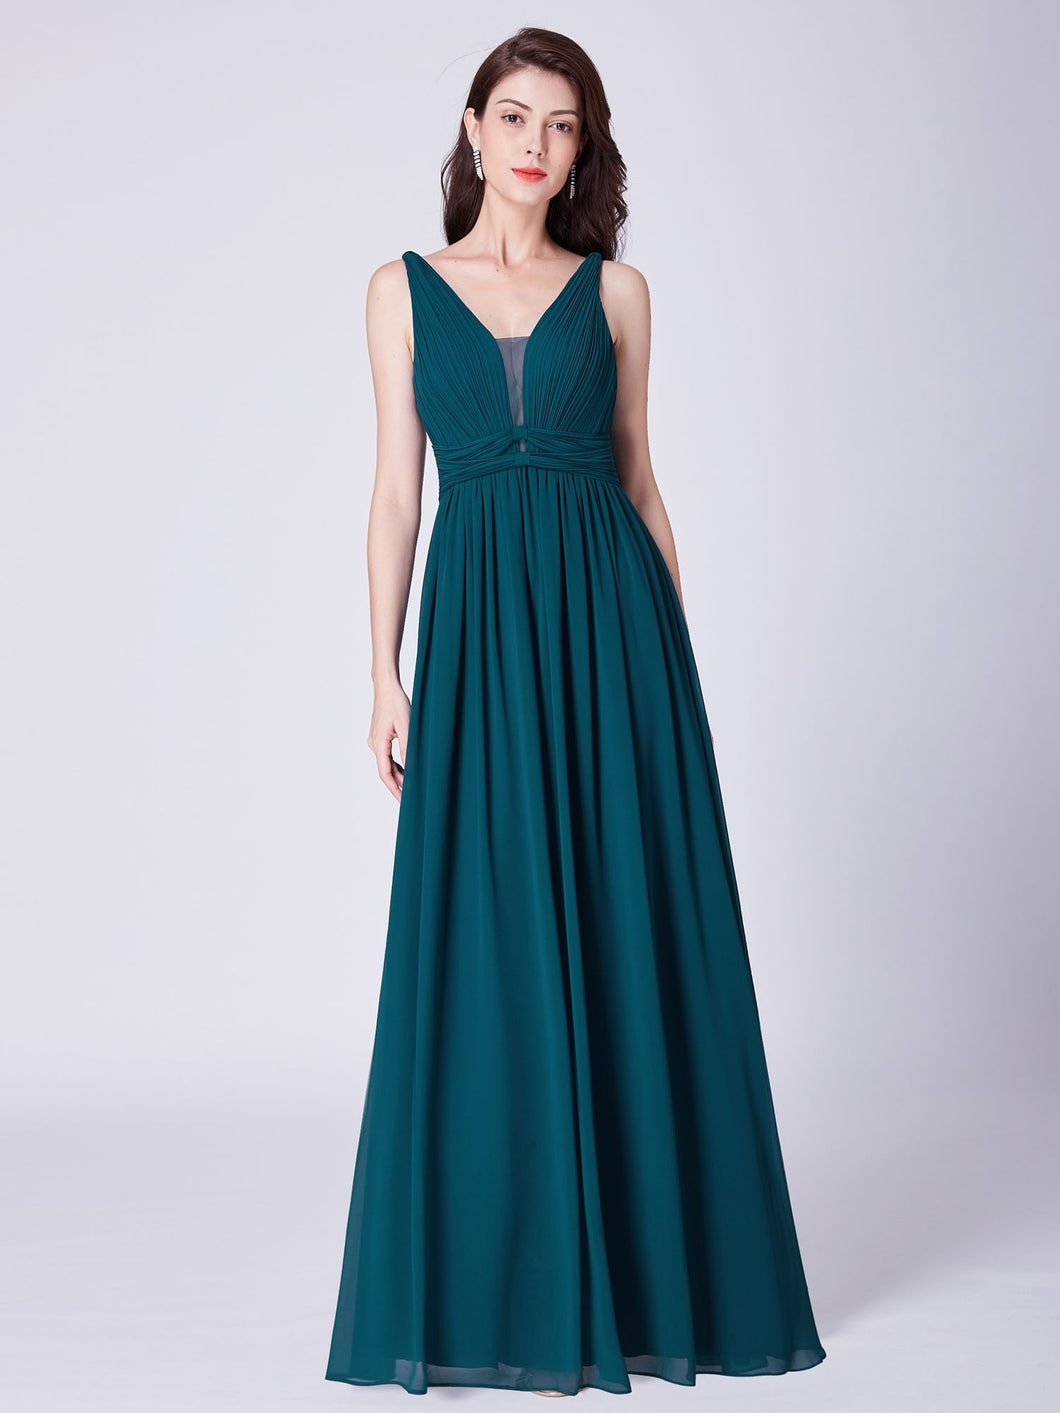 Green Chiffon A-Line/Princess Floor-Length Bridesmaids Dresses